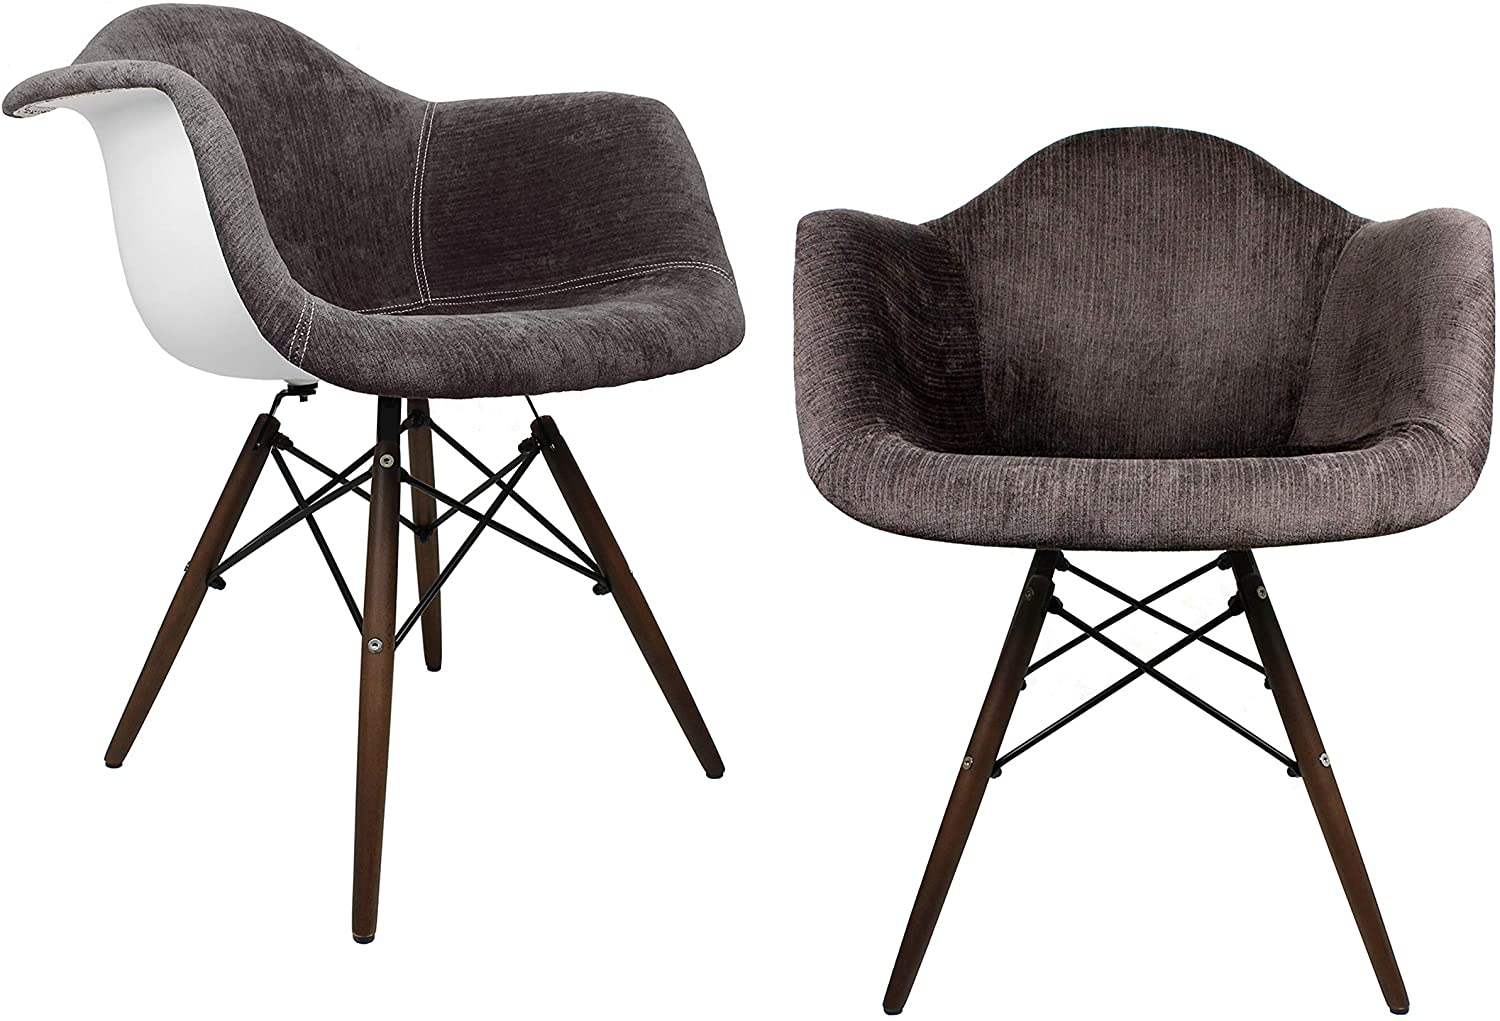 Mid-Century Modern Velvet Fabric Upholstered Accent Arm Chair with Dark Walnut Wood Eiffel Legs Set of 2 (Cocoa Brown)